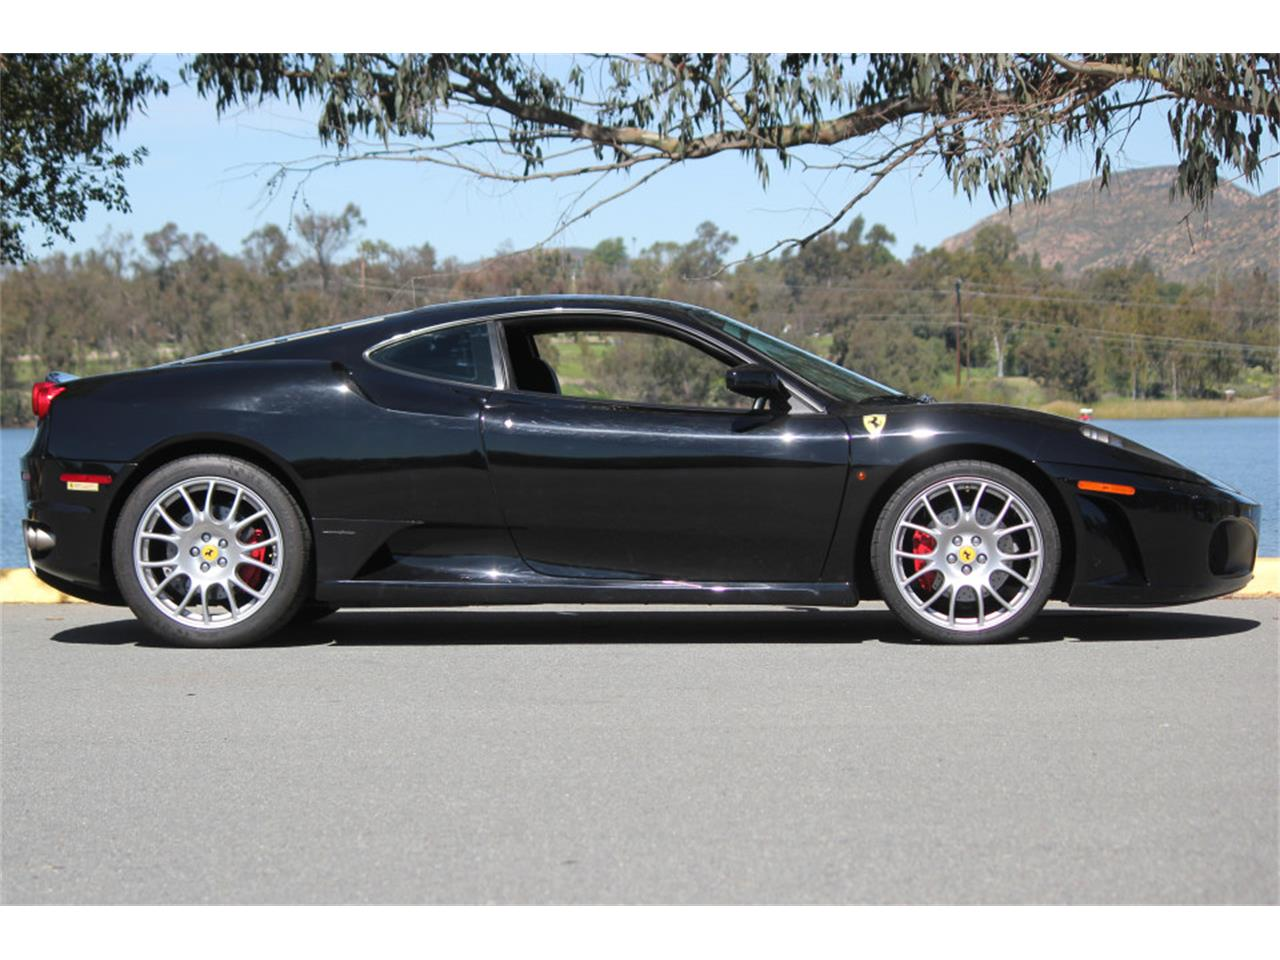 Large Picture of '07 Ferrari 430 located in California Offered by Precious Metals - KNRF